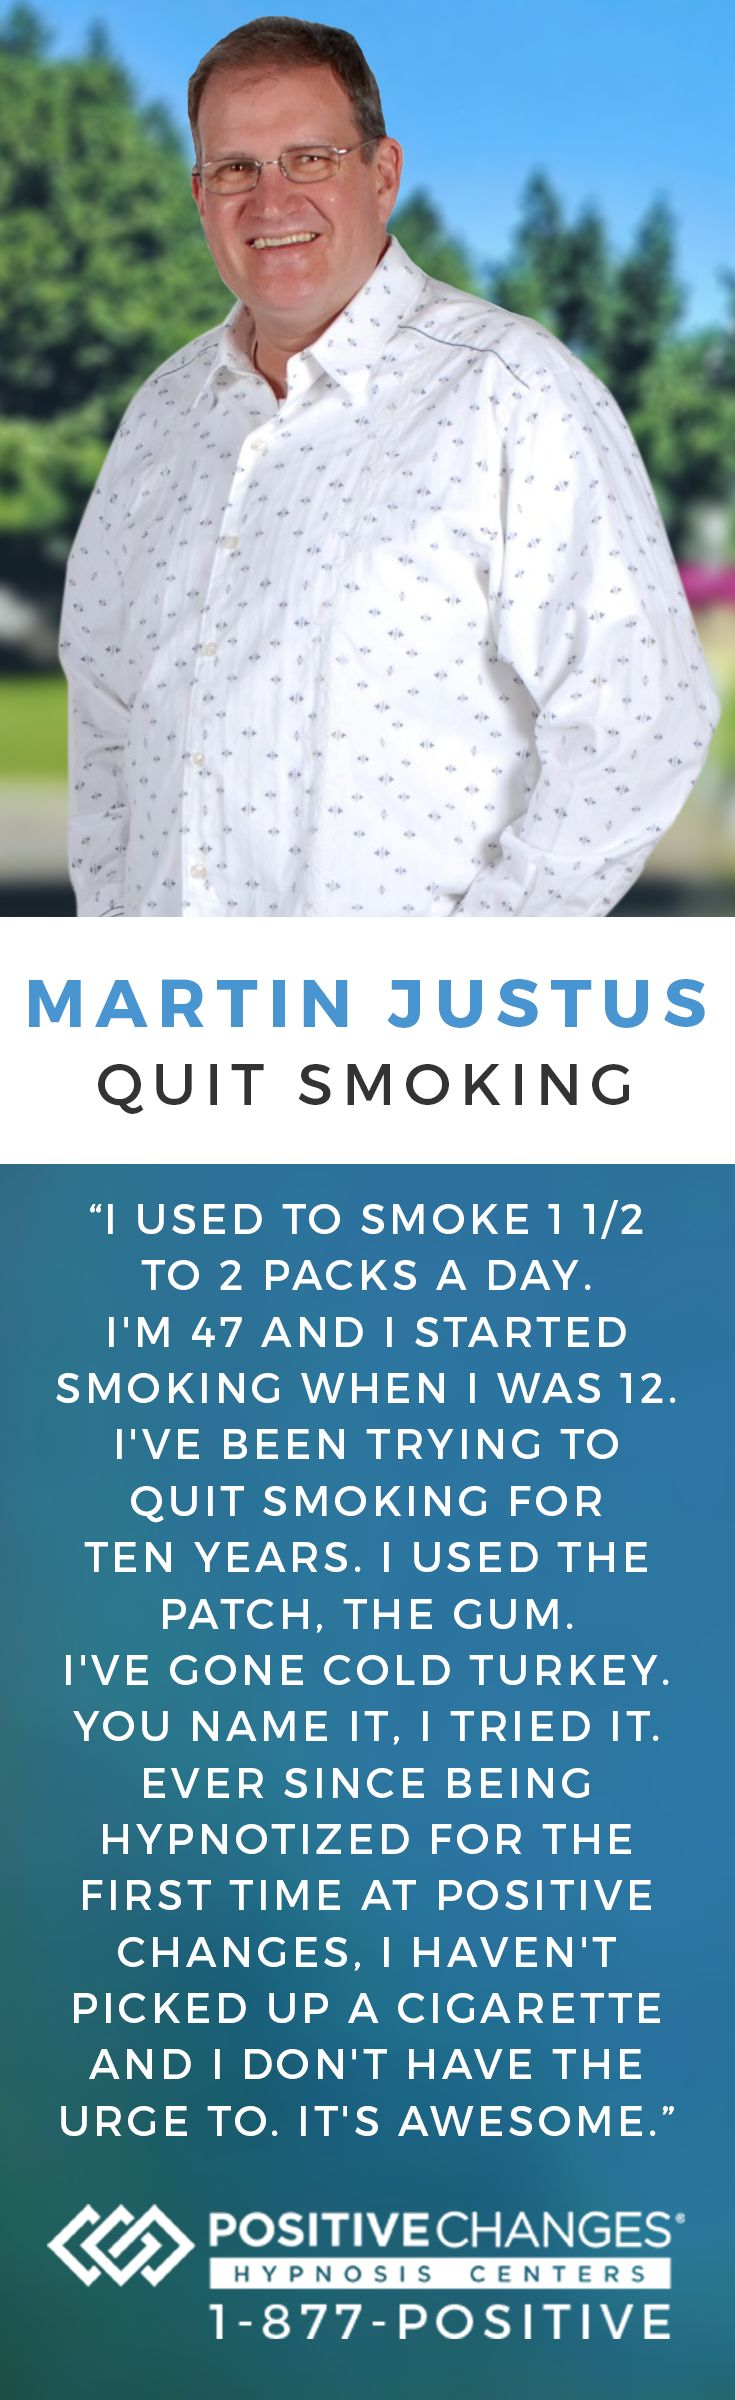 Martin was able to successfully quit smoking with Positive Changes Hypnosis. Our mission is to help people make Positive Changes in their lives. We have given tens of thousands of people the power to change their habits, behaviors and lives safely and effectively. To learn more, give us a call at 877-POSITIVE today!